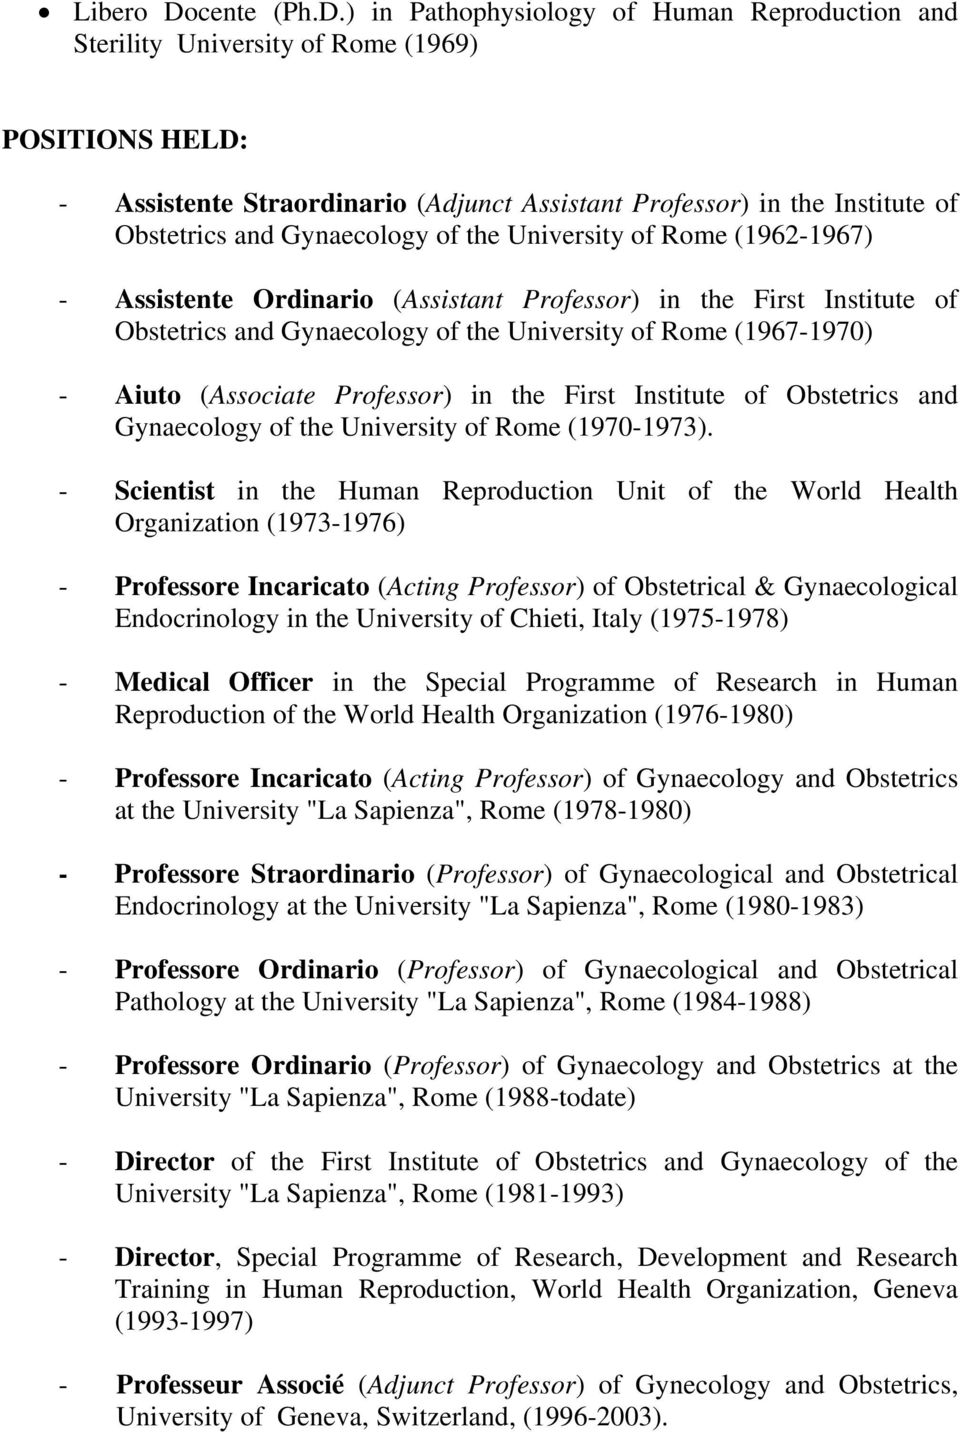 ) in Pathophysiology of Human Reproduction and Sterility University of Rome (1969) POSITIONS HELD: - Assistente Straordinario (Adjunct Assistant Professor) in the Institute of Obstetrics and